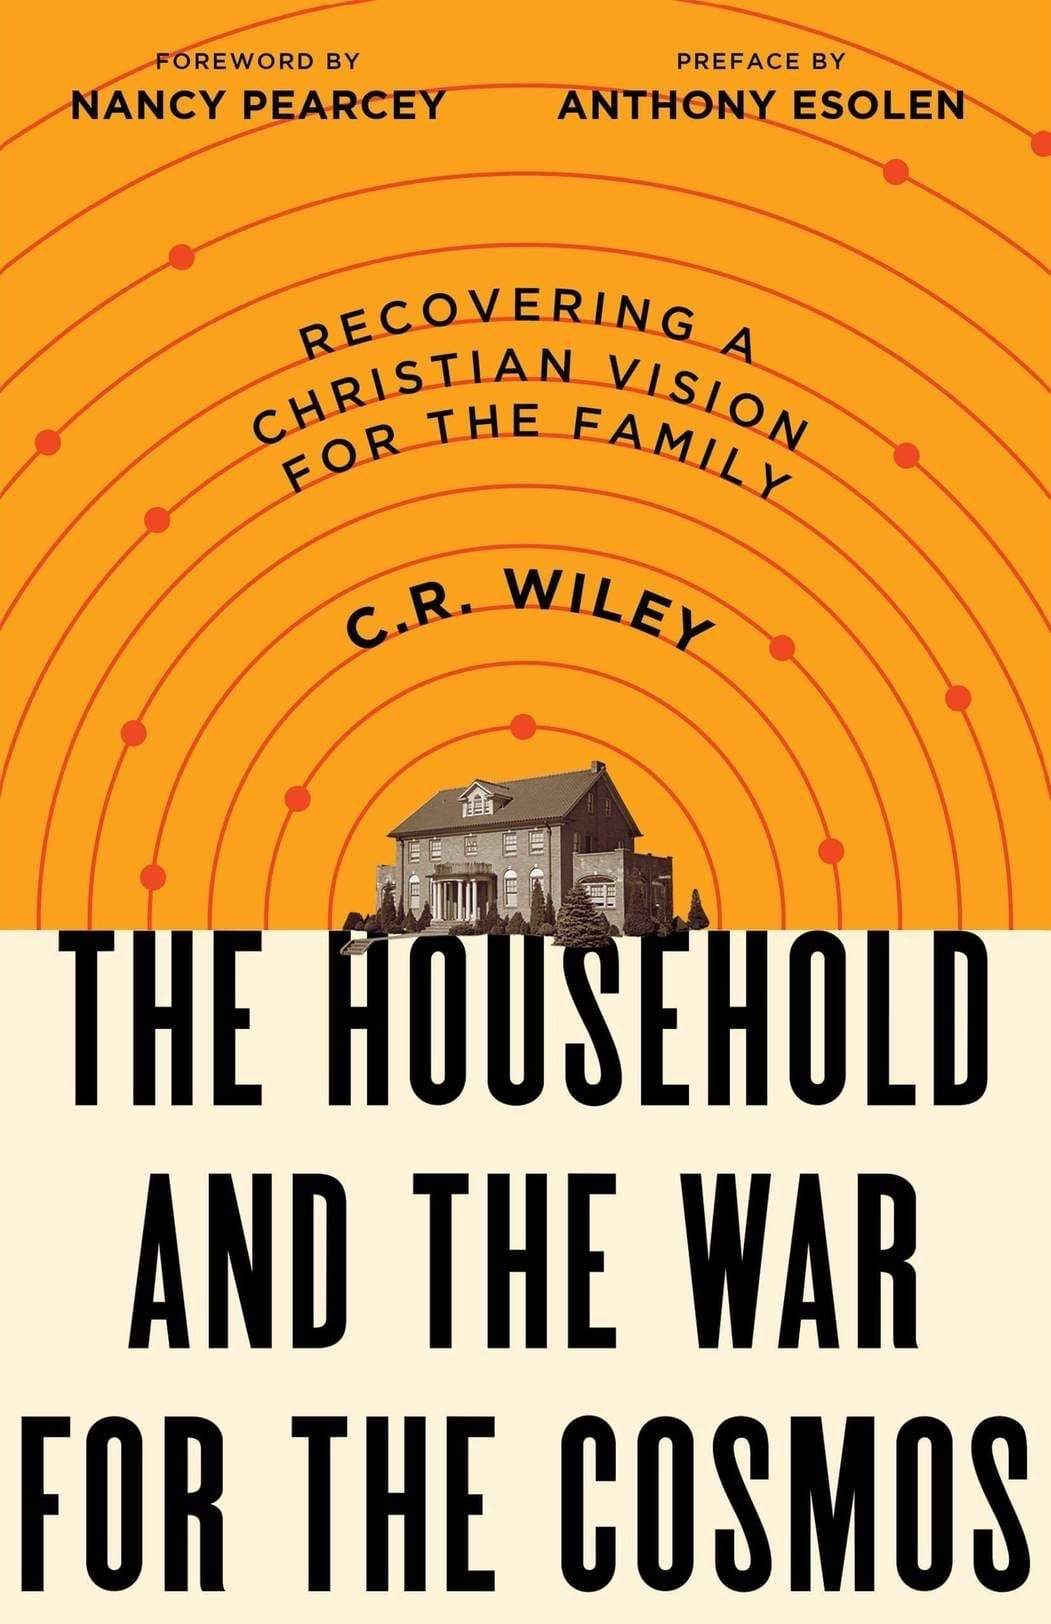 The Household and the War for the Cosmos Audiobook